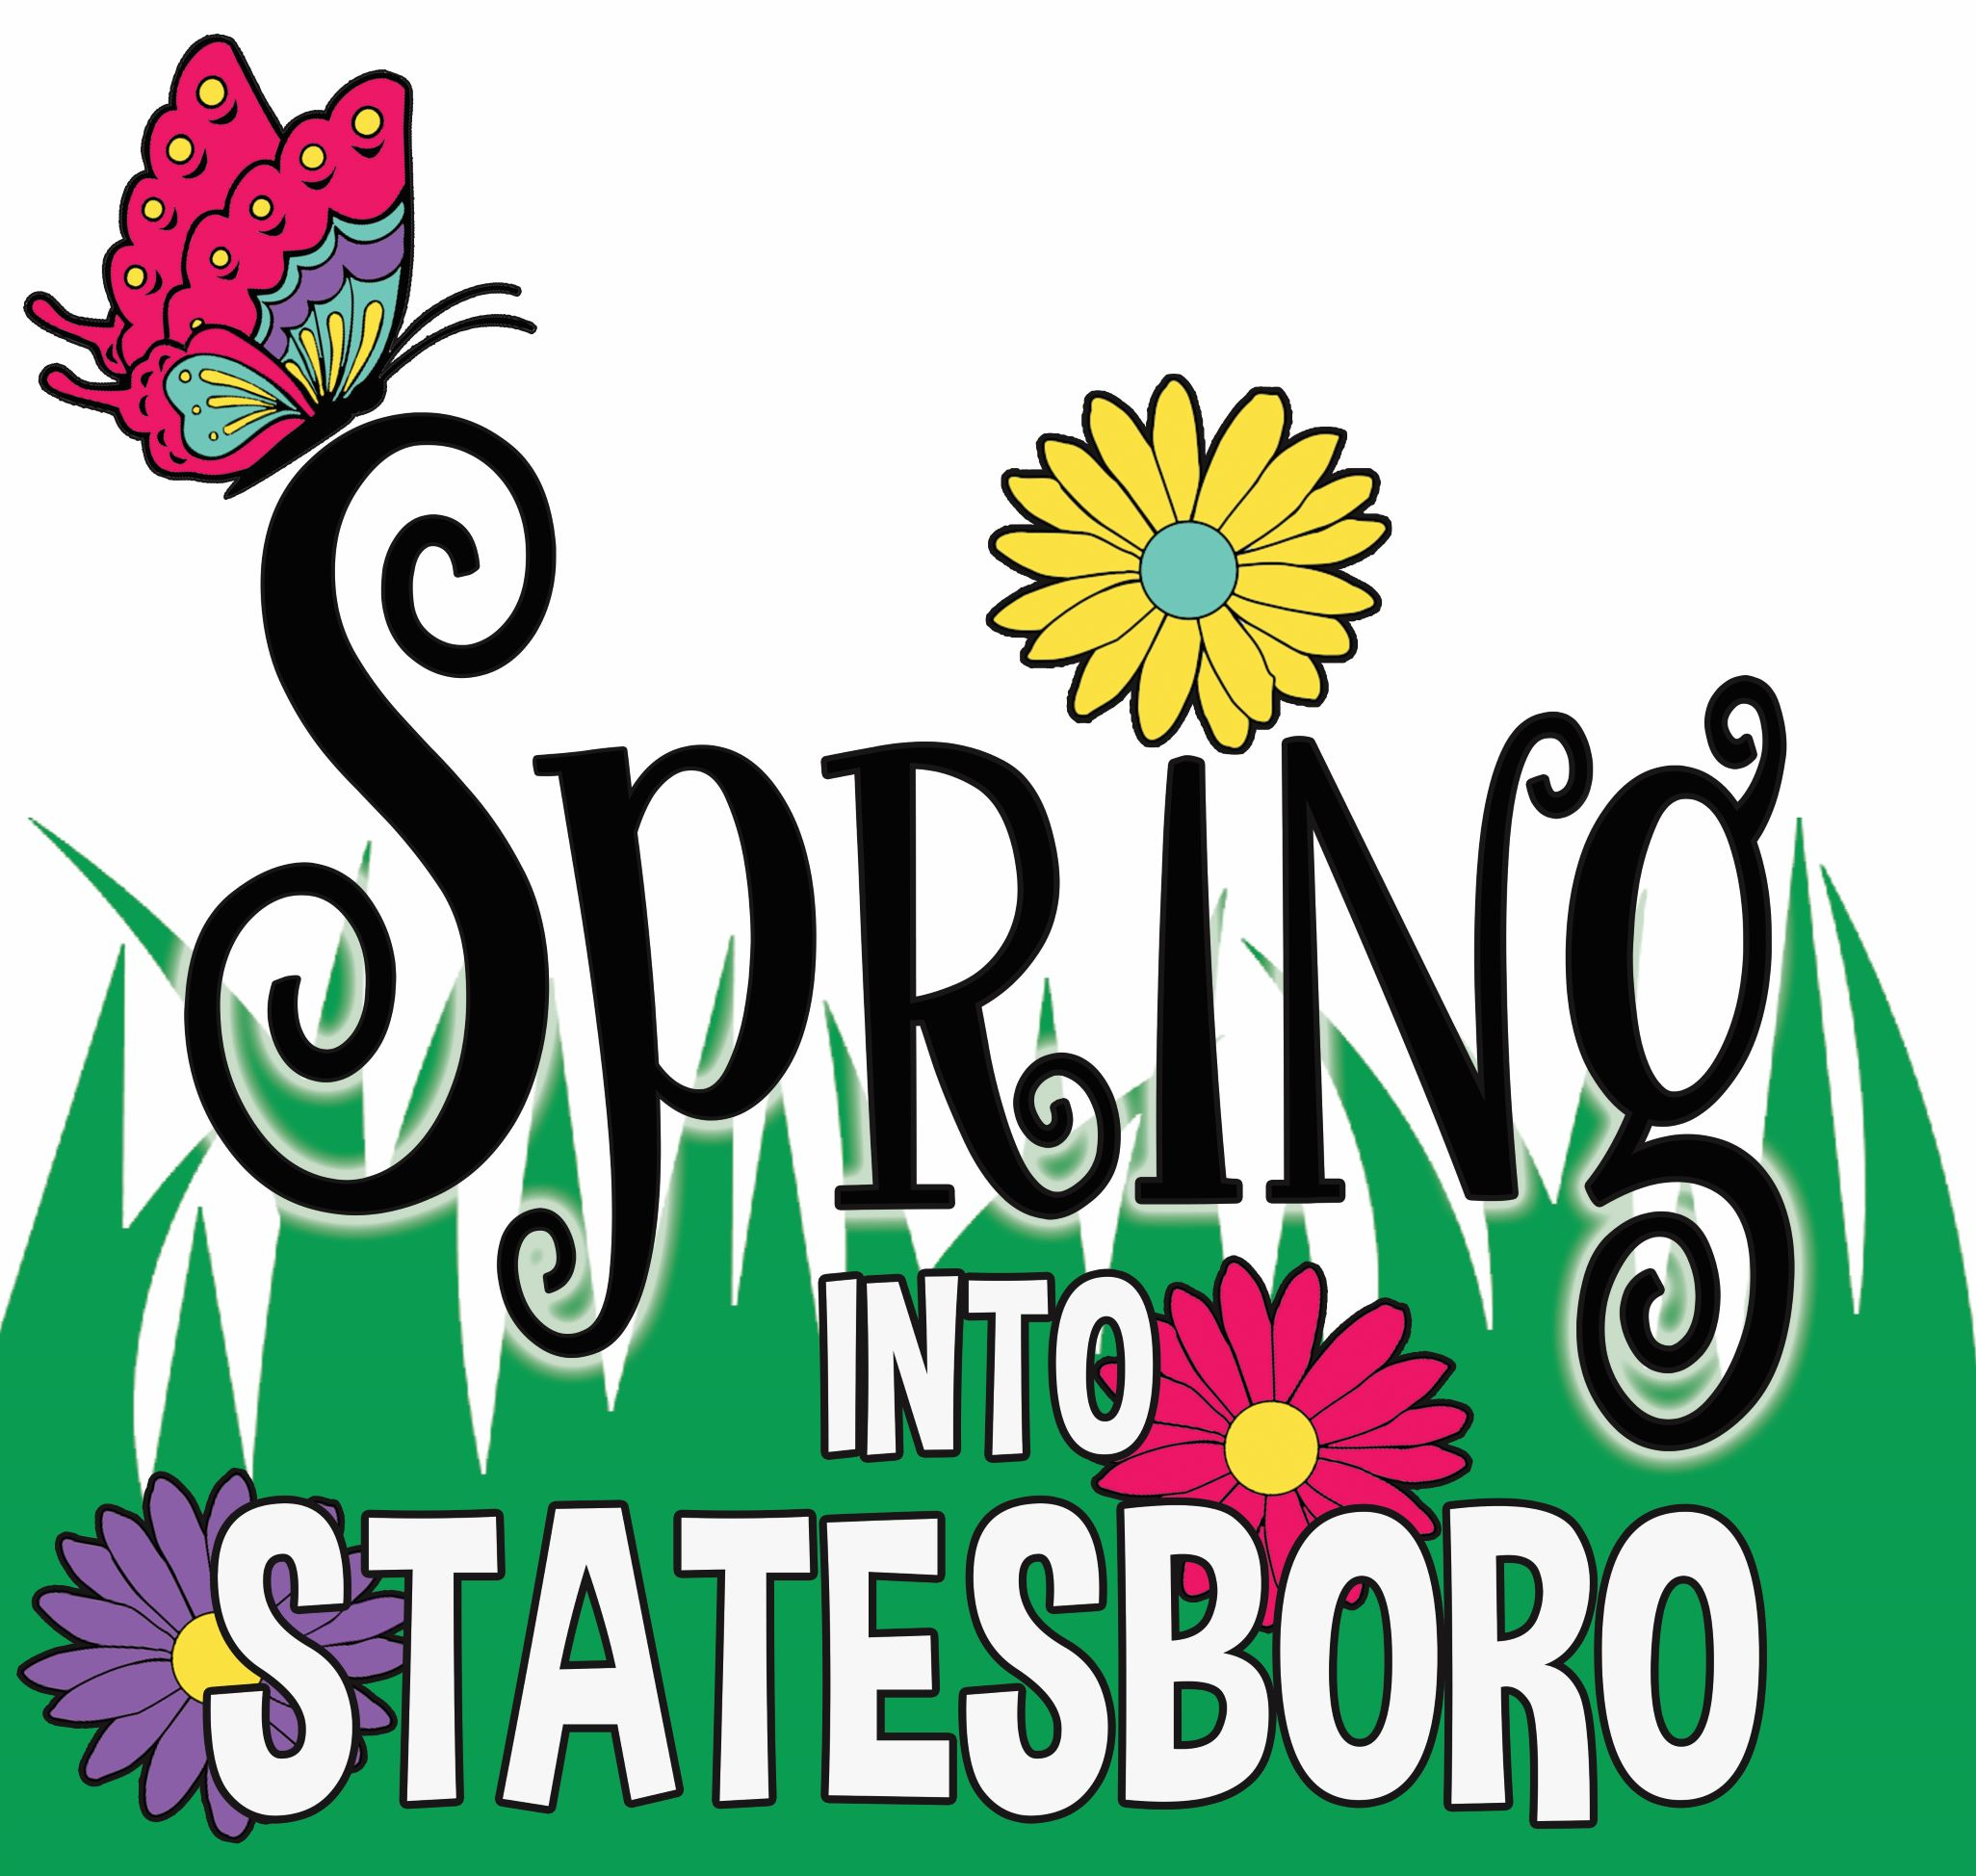 Cancelled: Spring into Statesboro